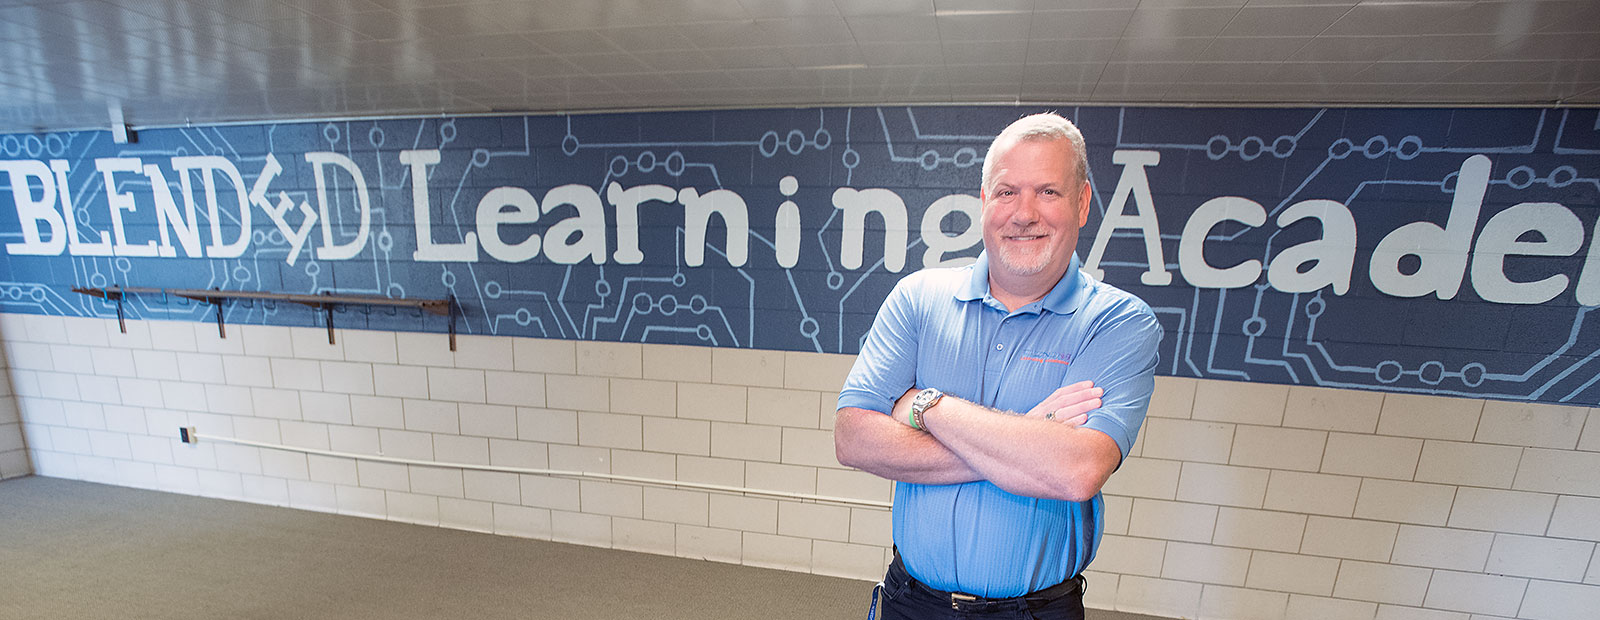 Tim Brannan, Founder and Superintendent of Blended Learning Academies  - Photo Dave Trumpie <span class='image-credits'></span>